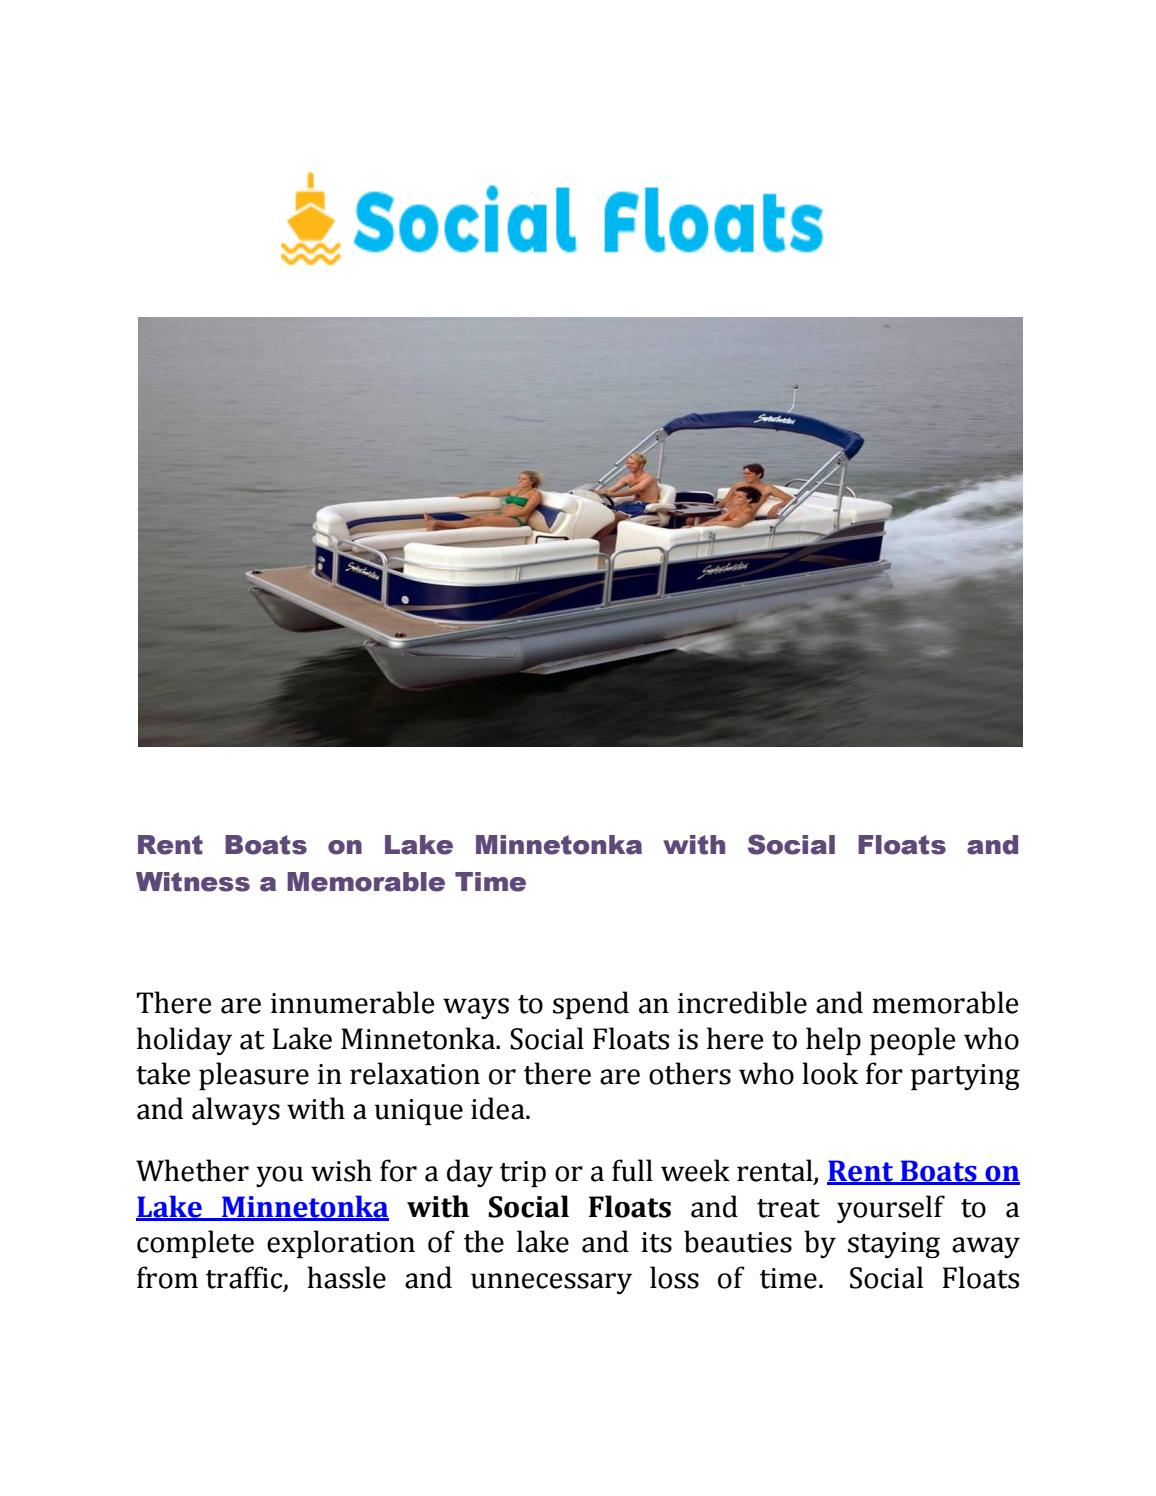 Rent Boats On Lake Minnetonka With Social Floats By